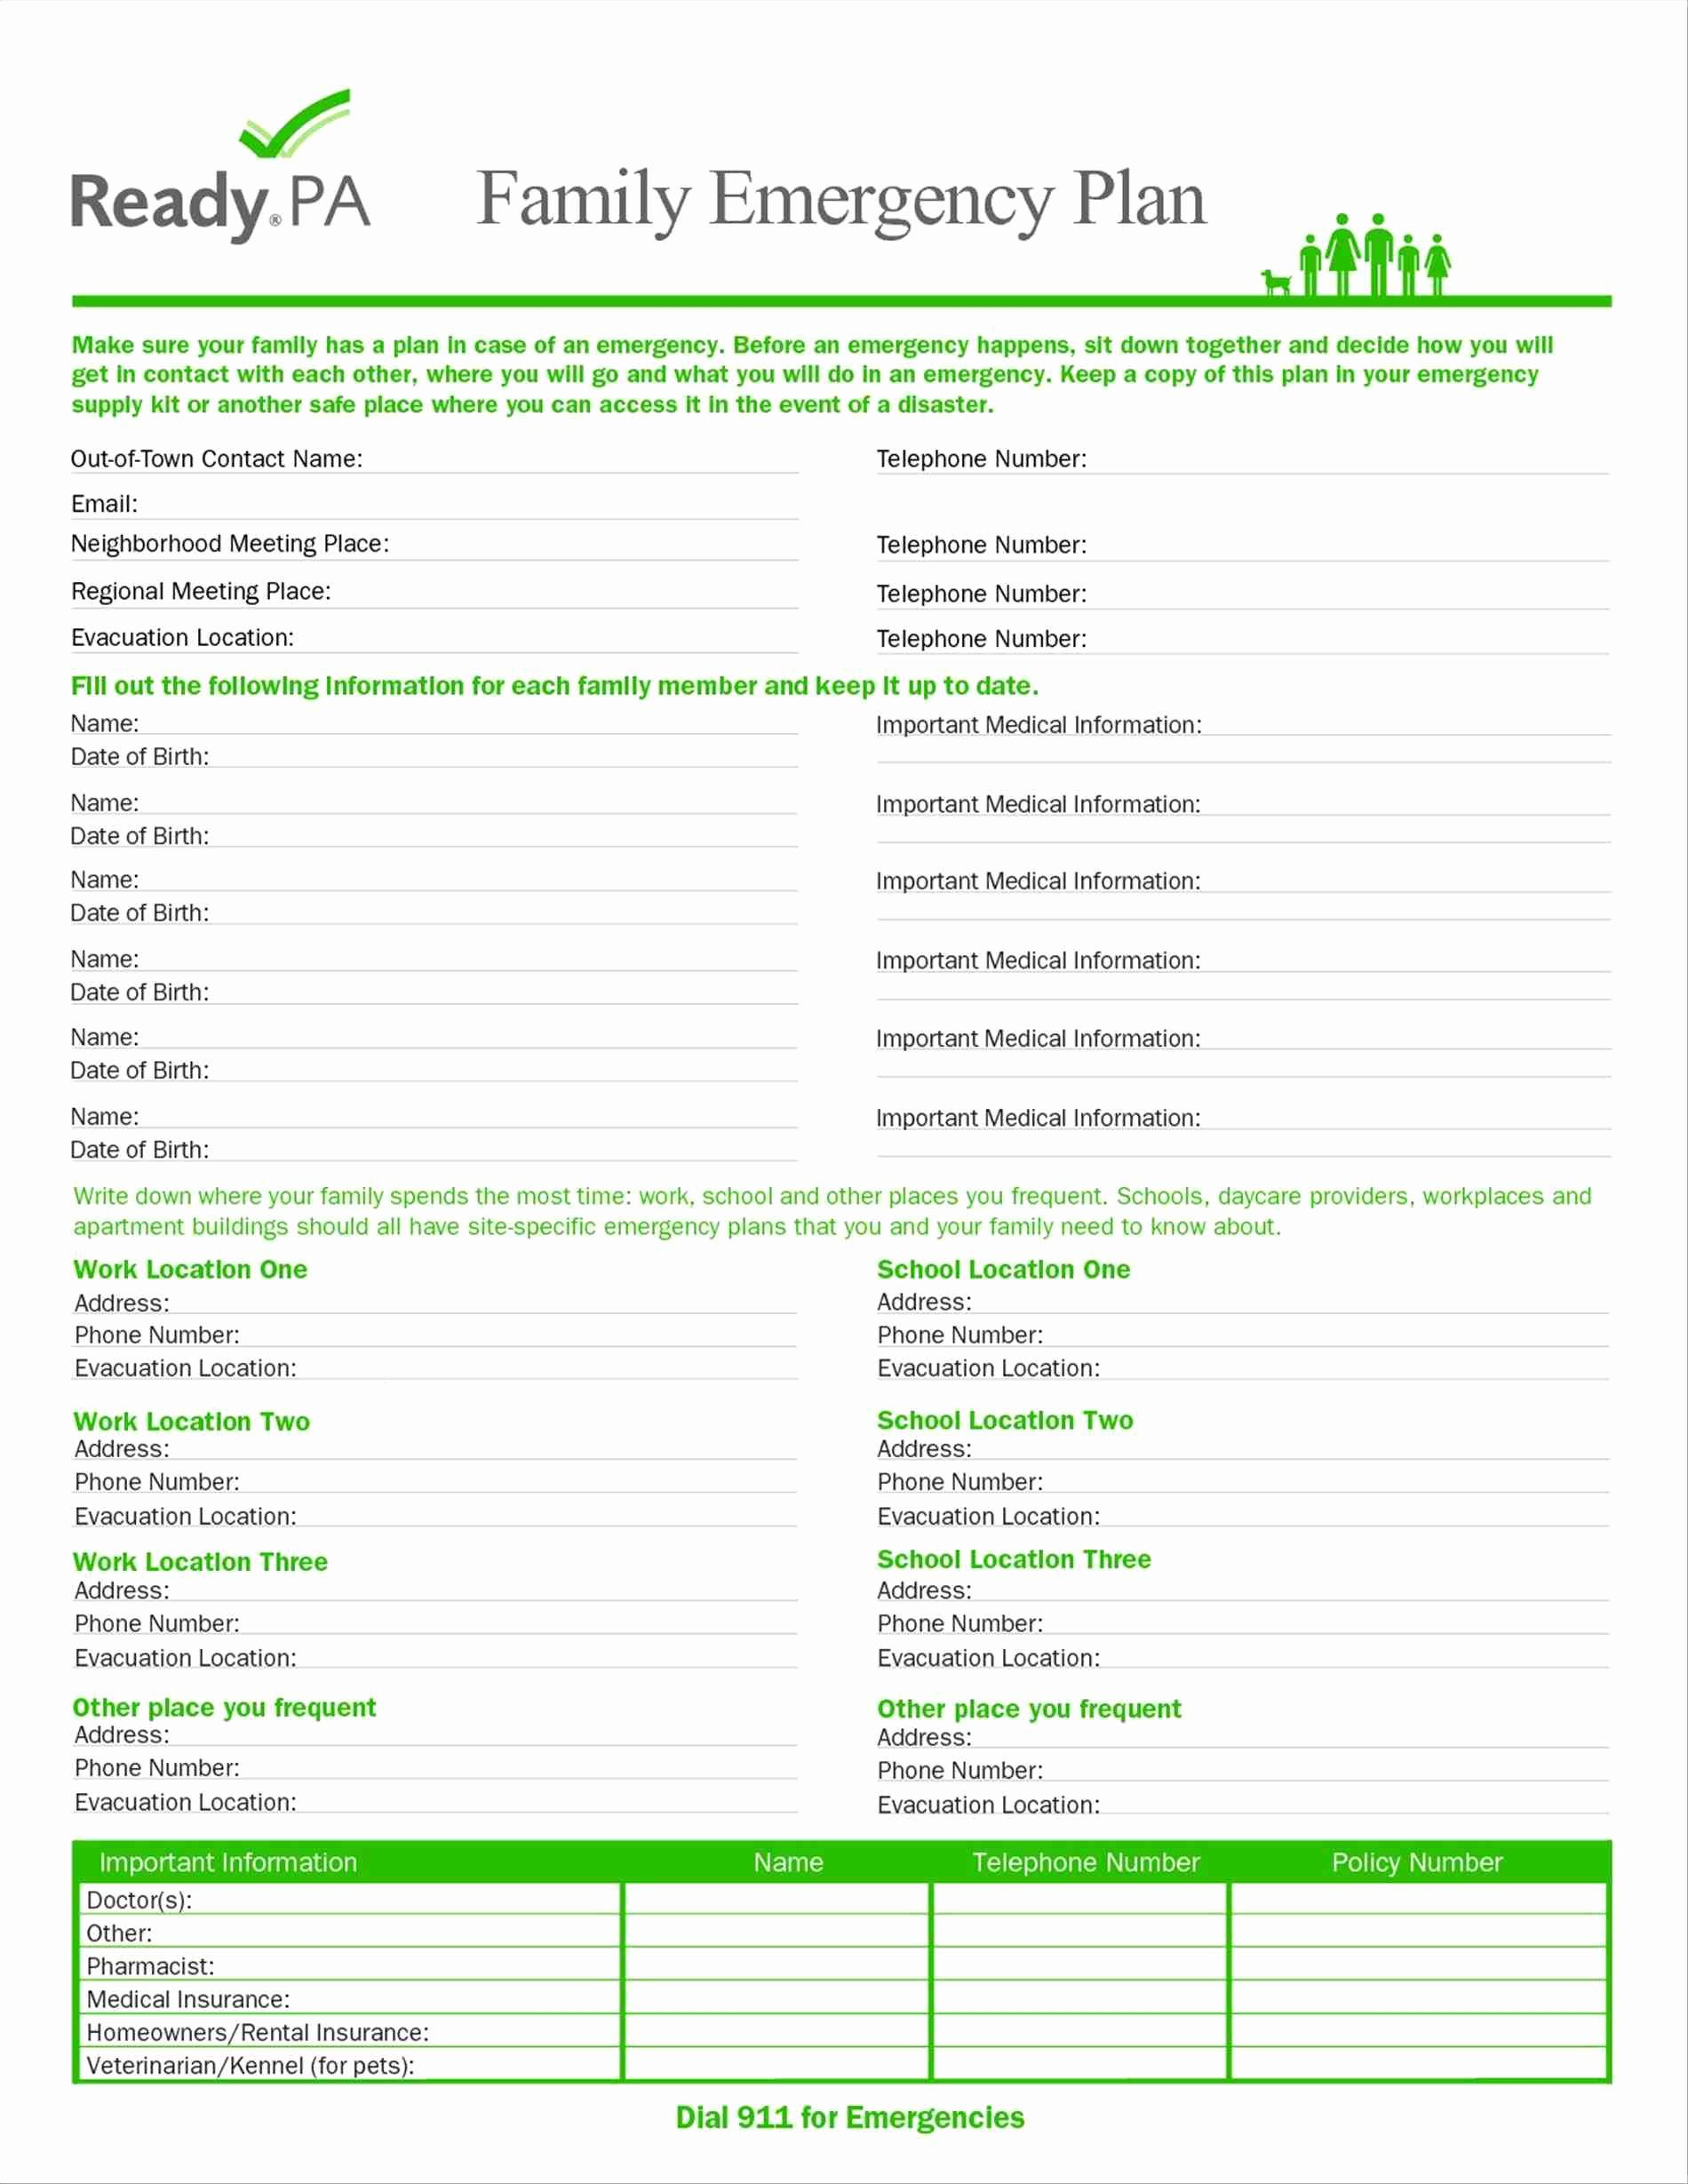 Family Emergency Disaster Plan Template